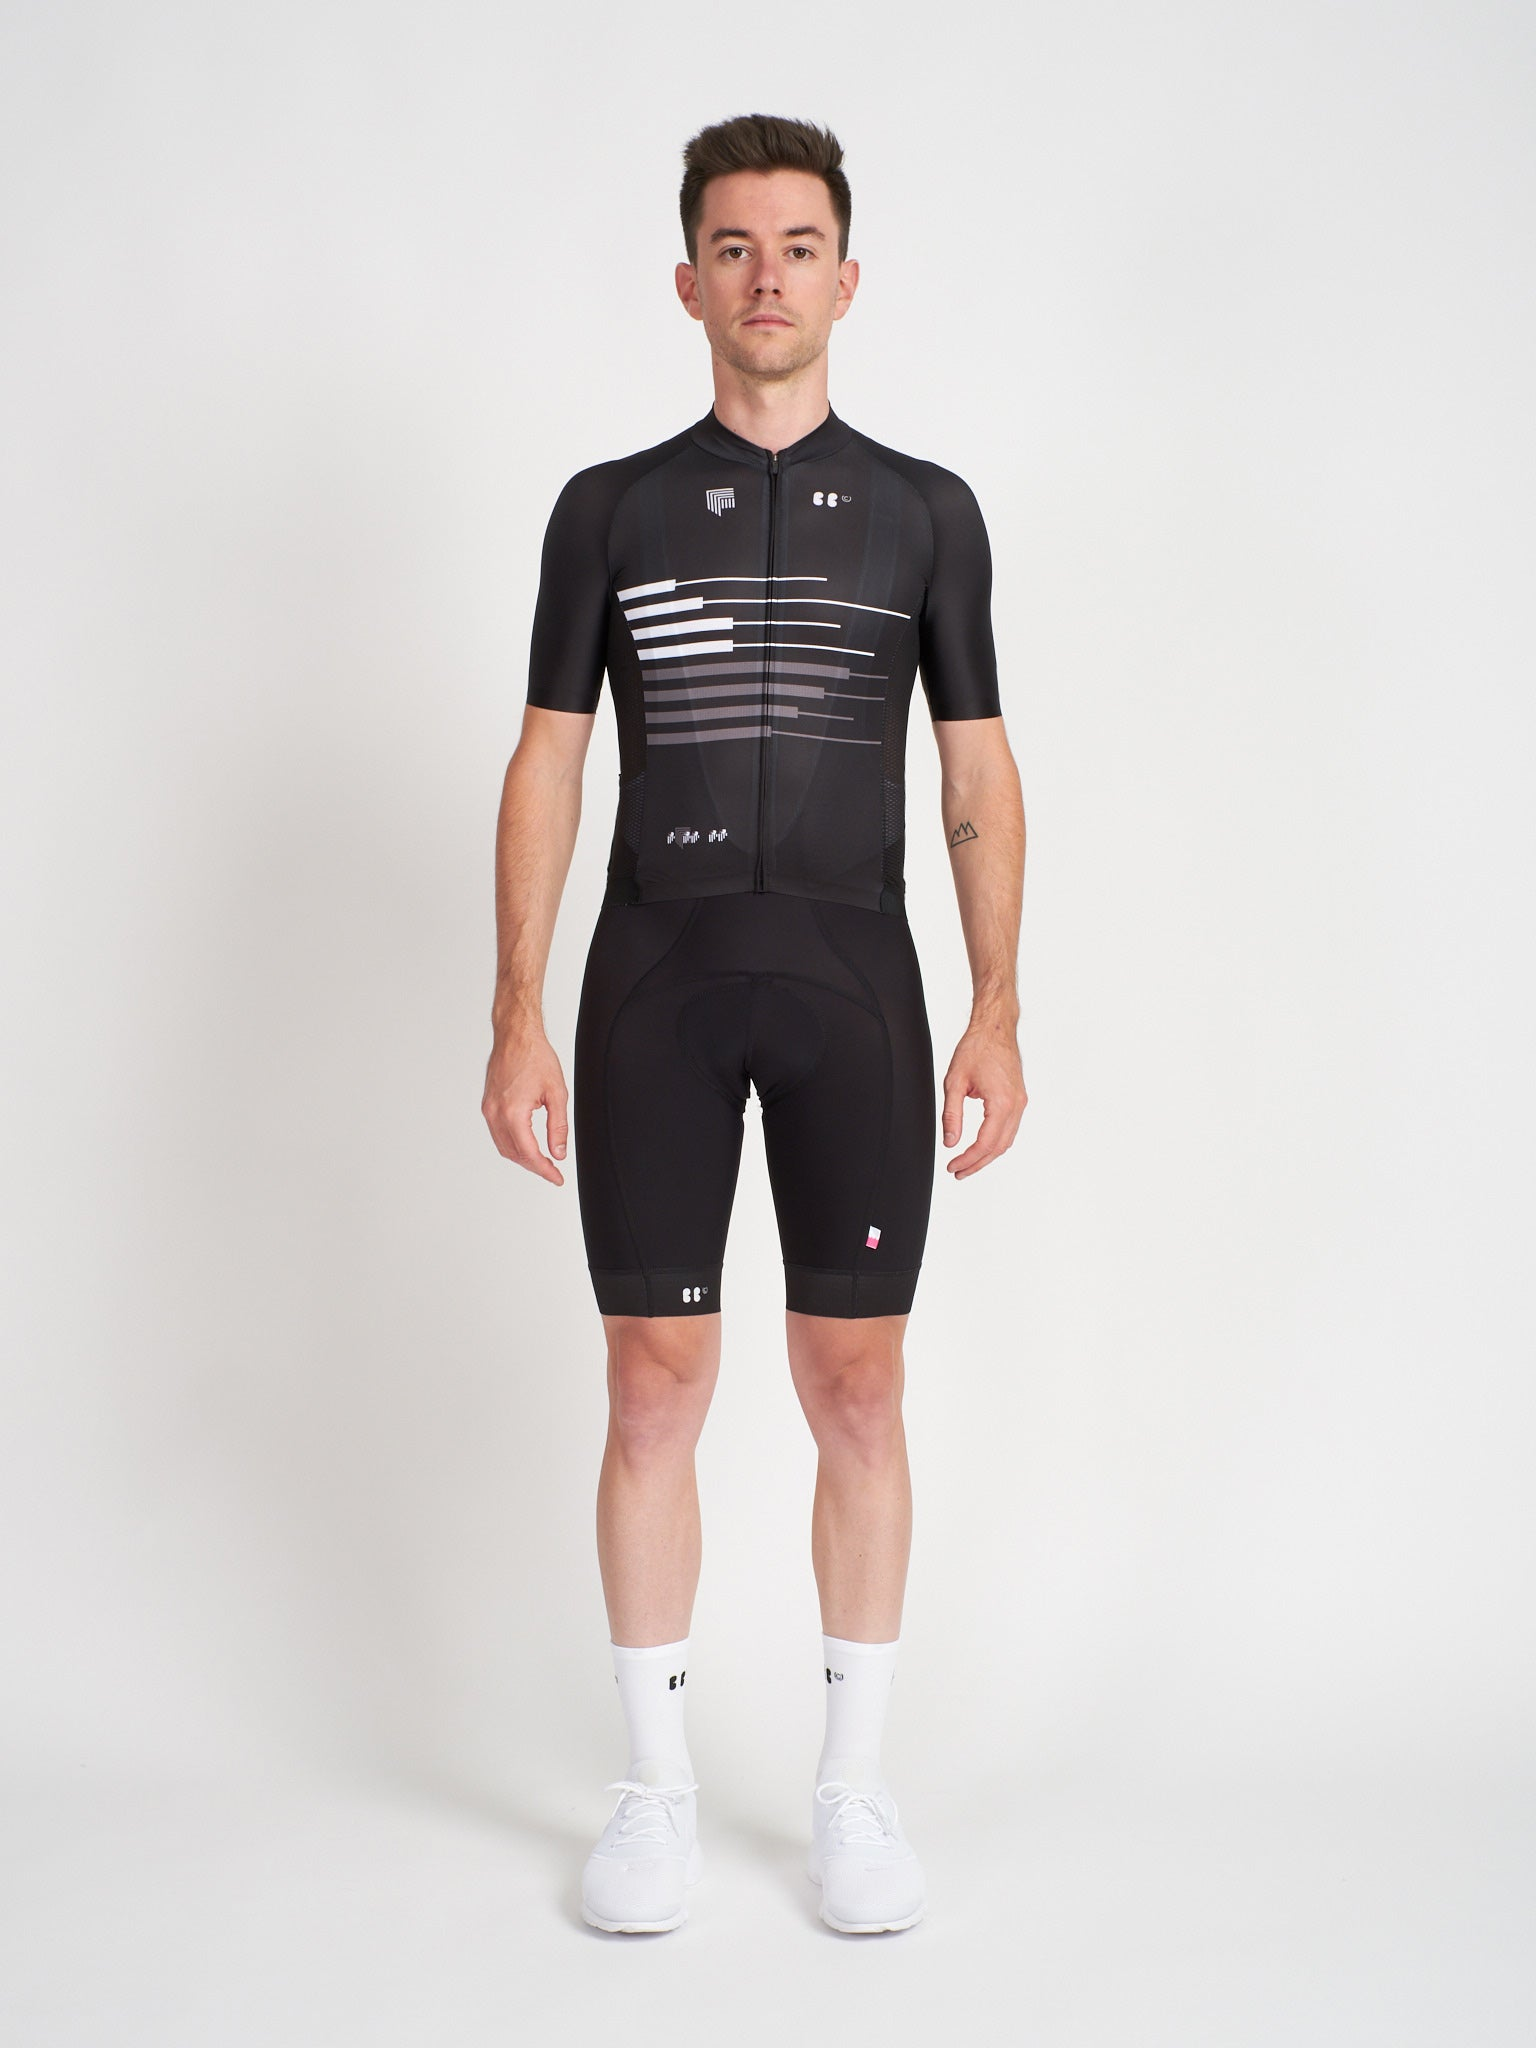 BBUC for Festka Cycling Jersey & Cycling Bibs Black